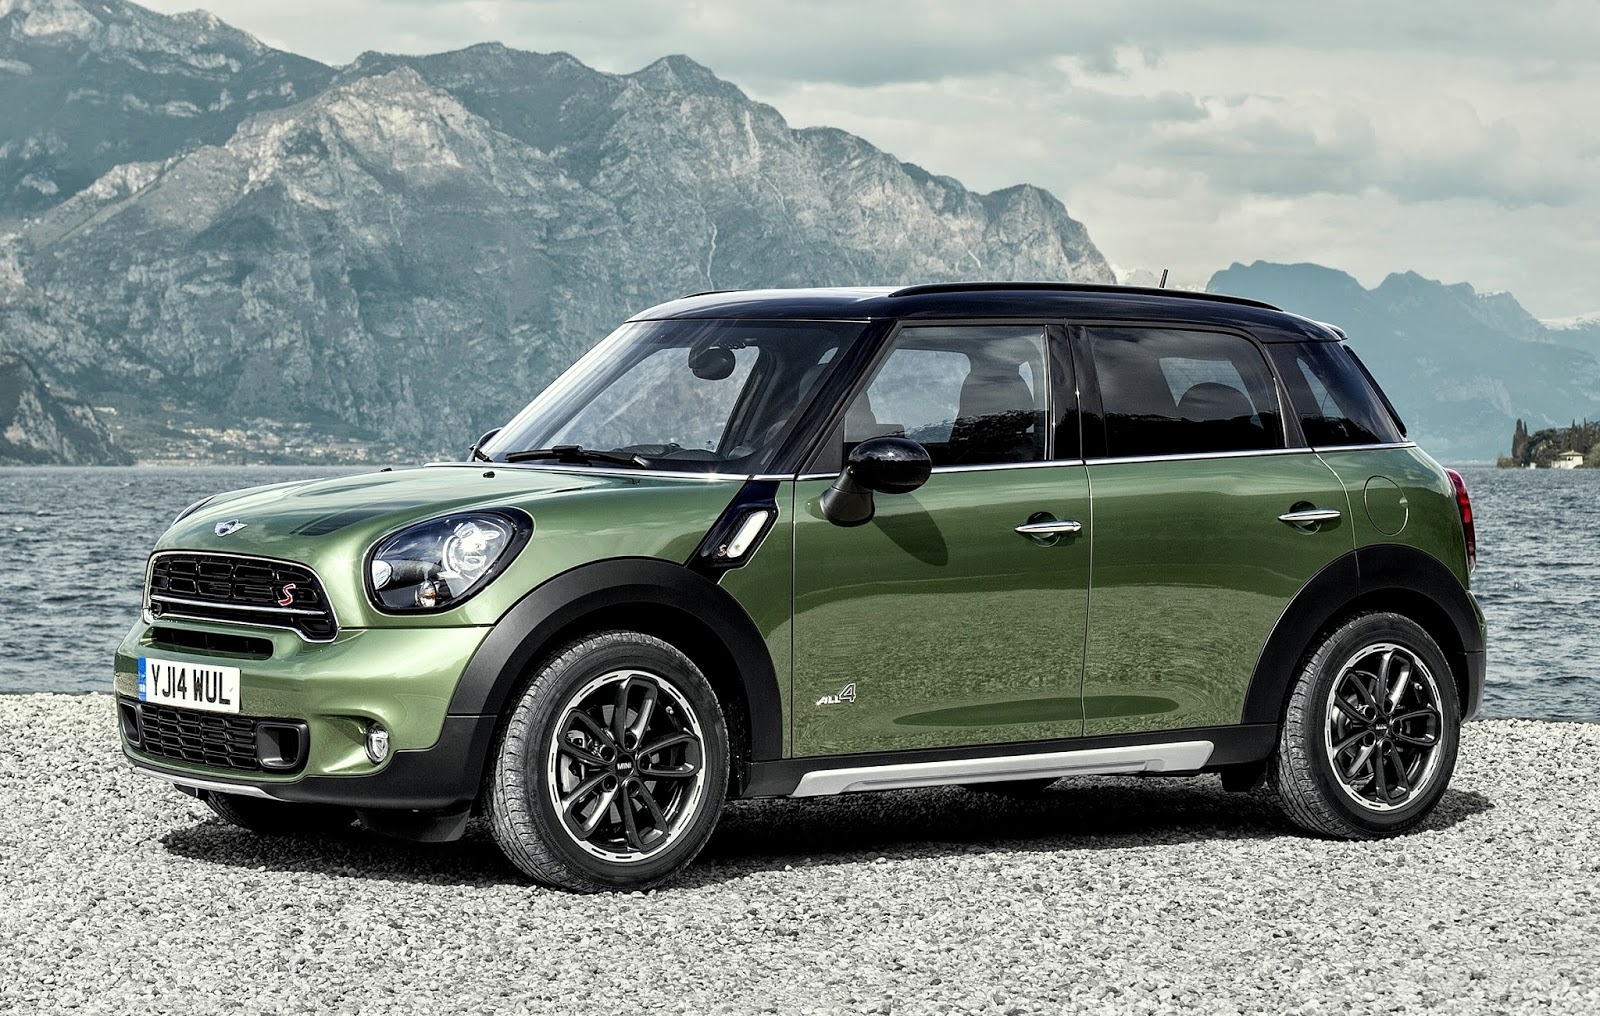 2015 mini cooper d countryman launched in india at rs 36 5 lakhs ex showroom automobilians. Black Bedroom Furniture Sets. Home Design Ideas